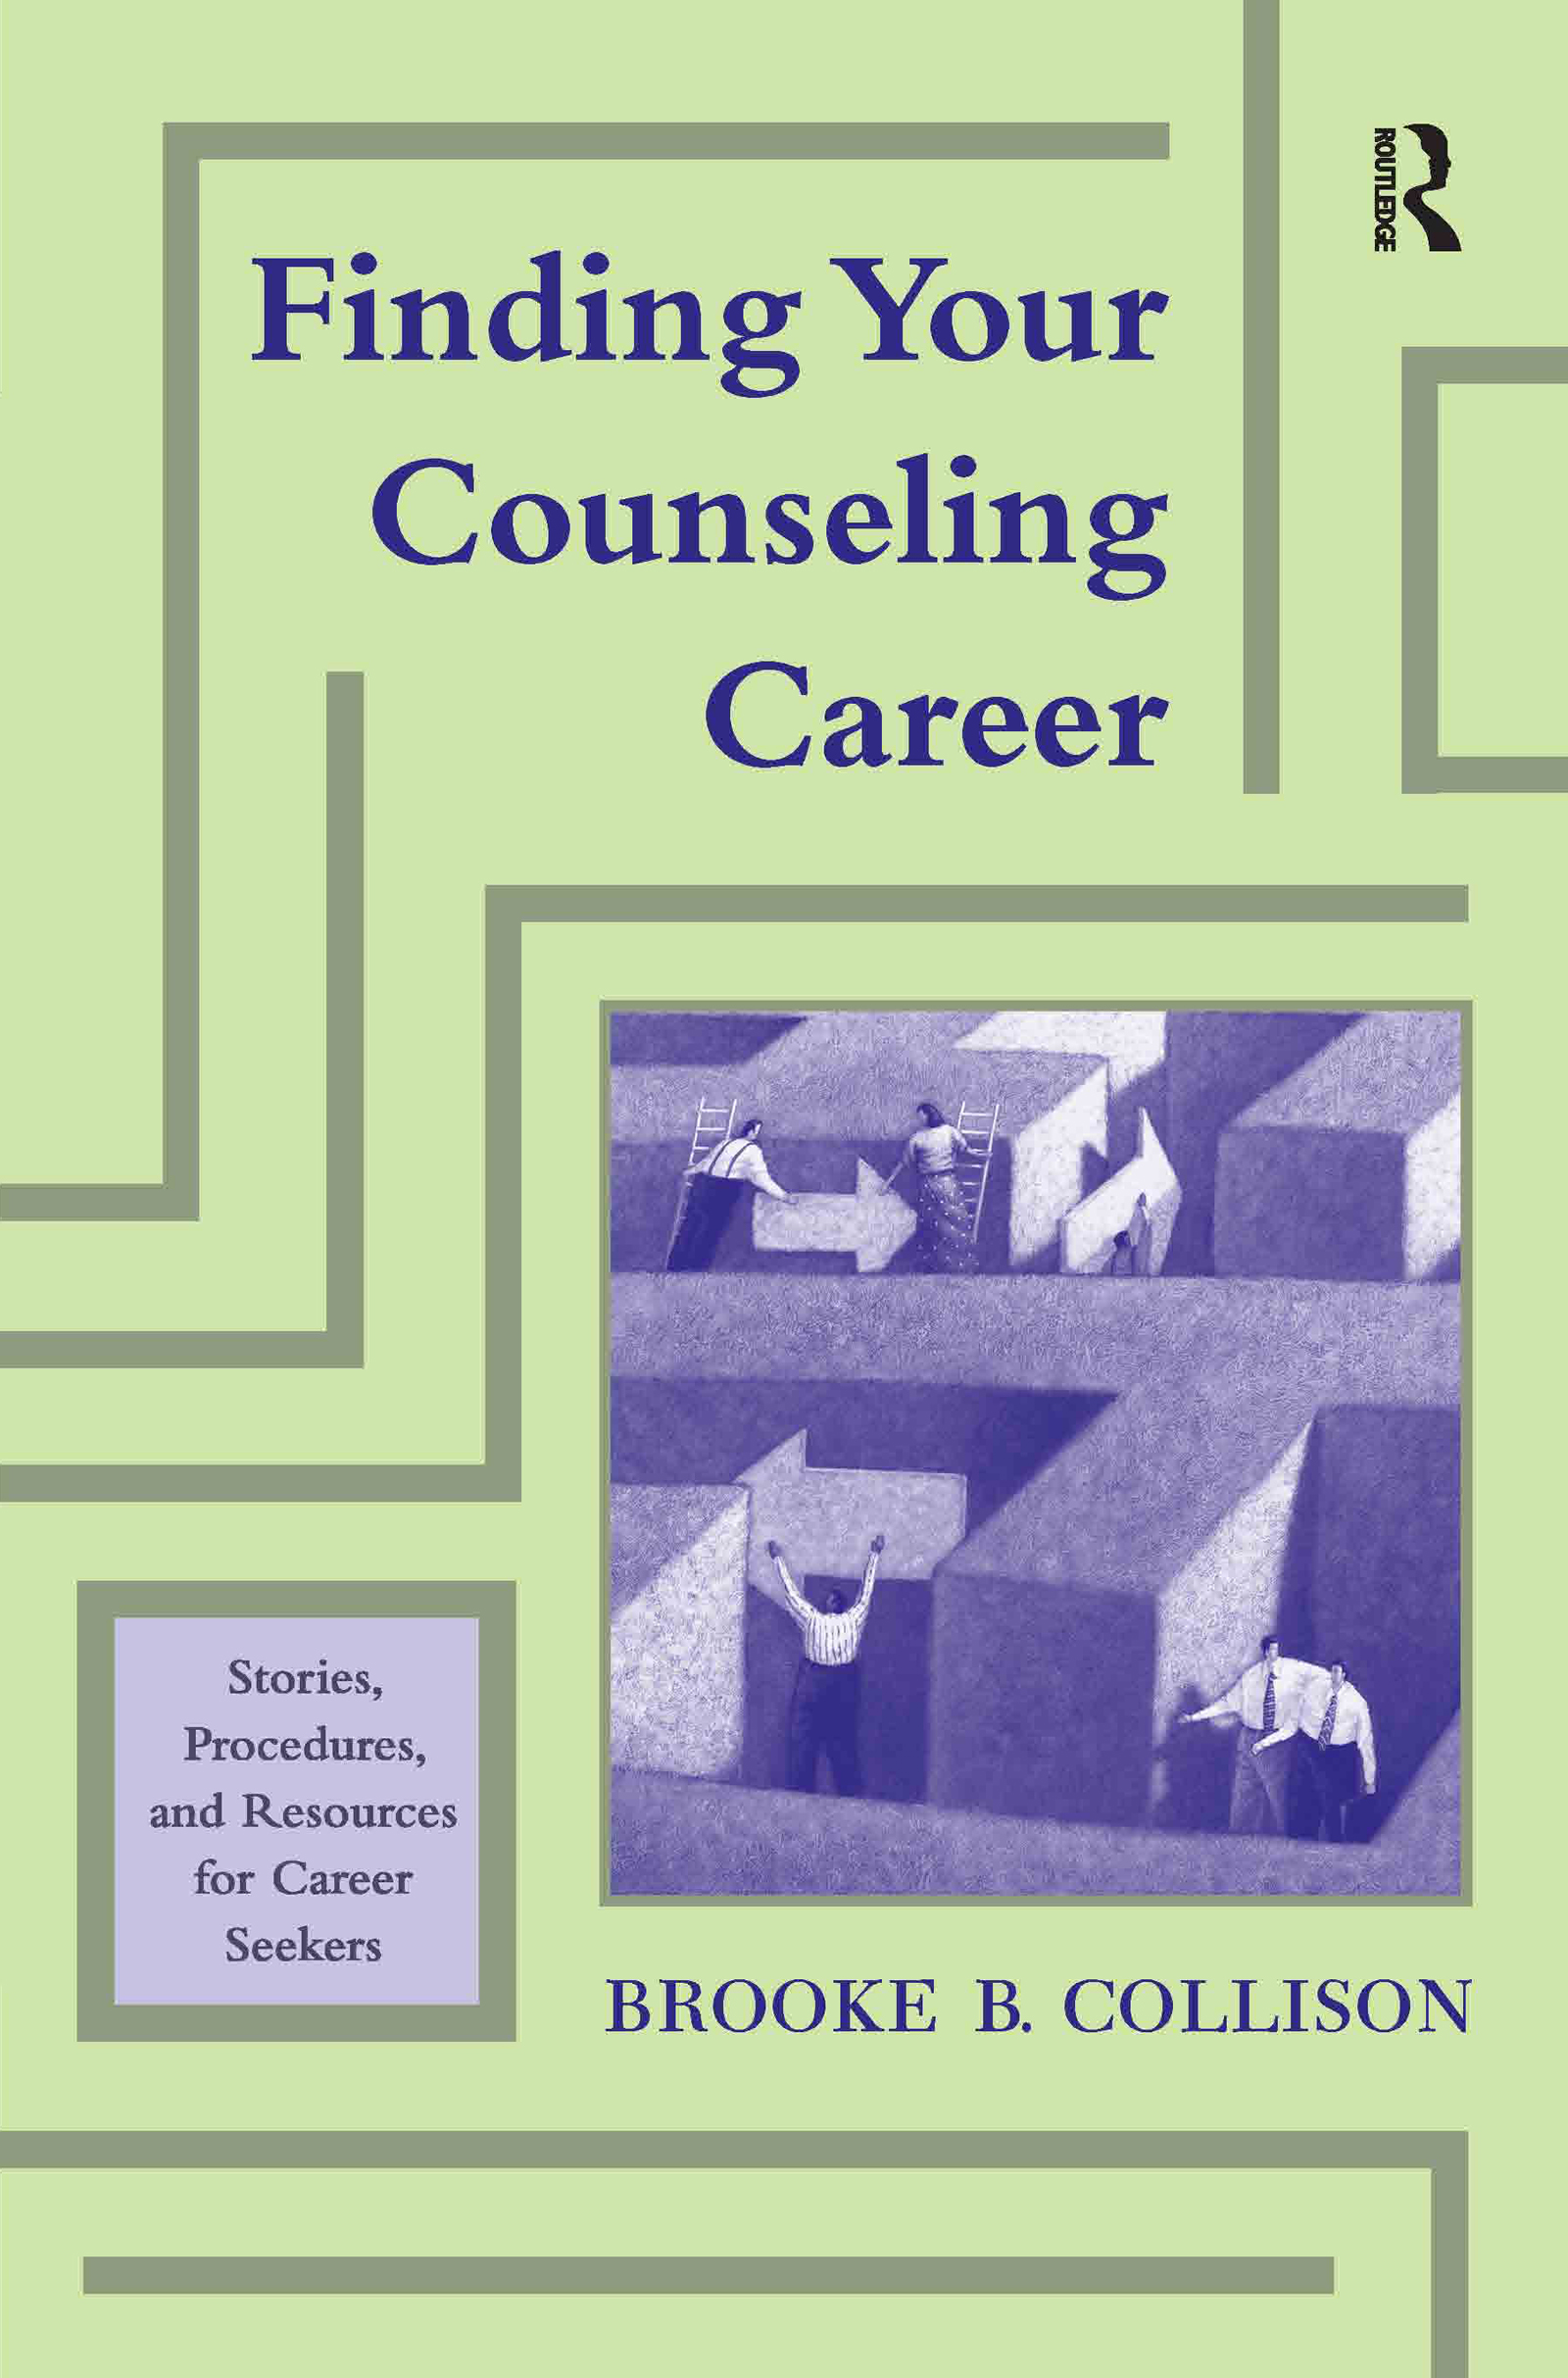 Finding Your Counseling Career: Stories, Procedures, and Resources for Career Seekers (Paperback) book cover